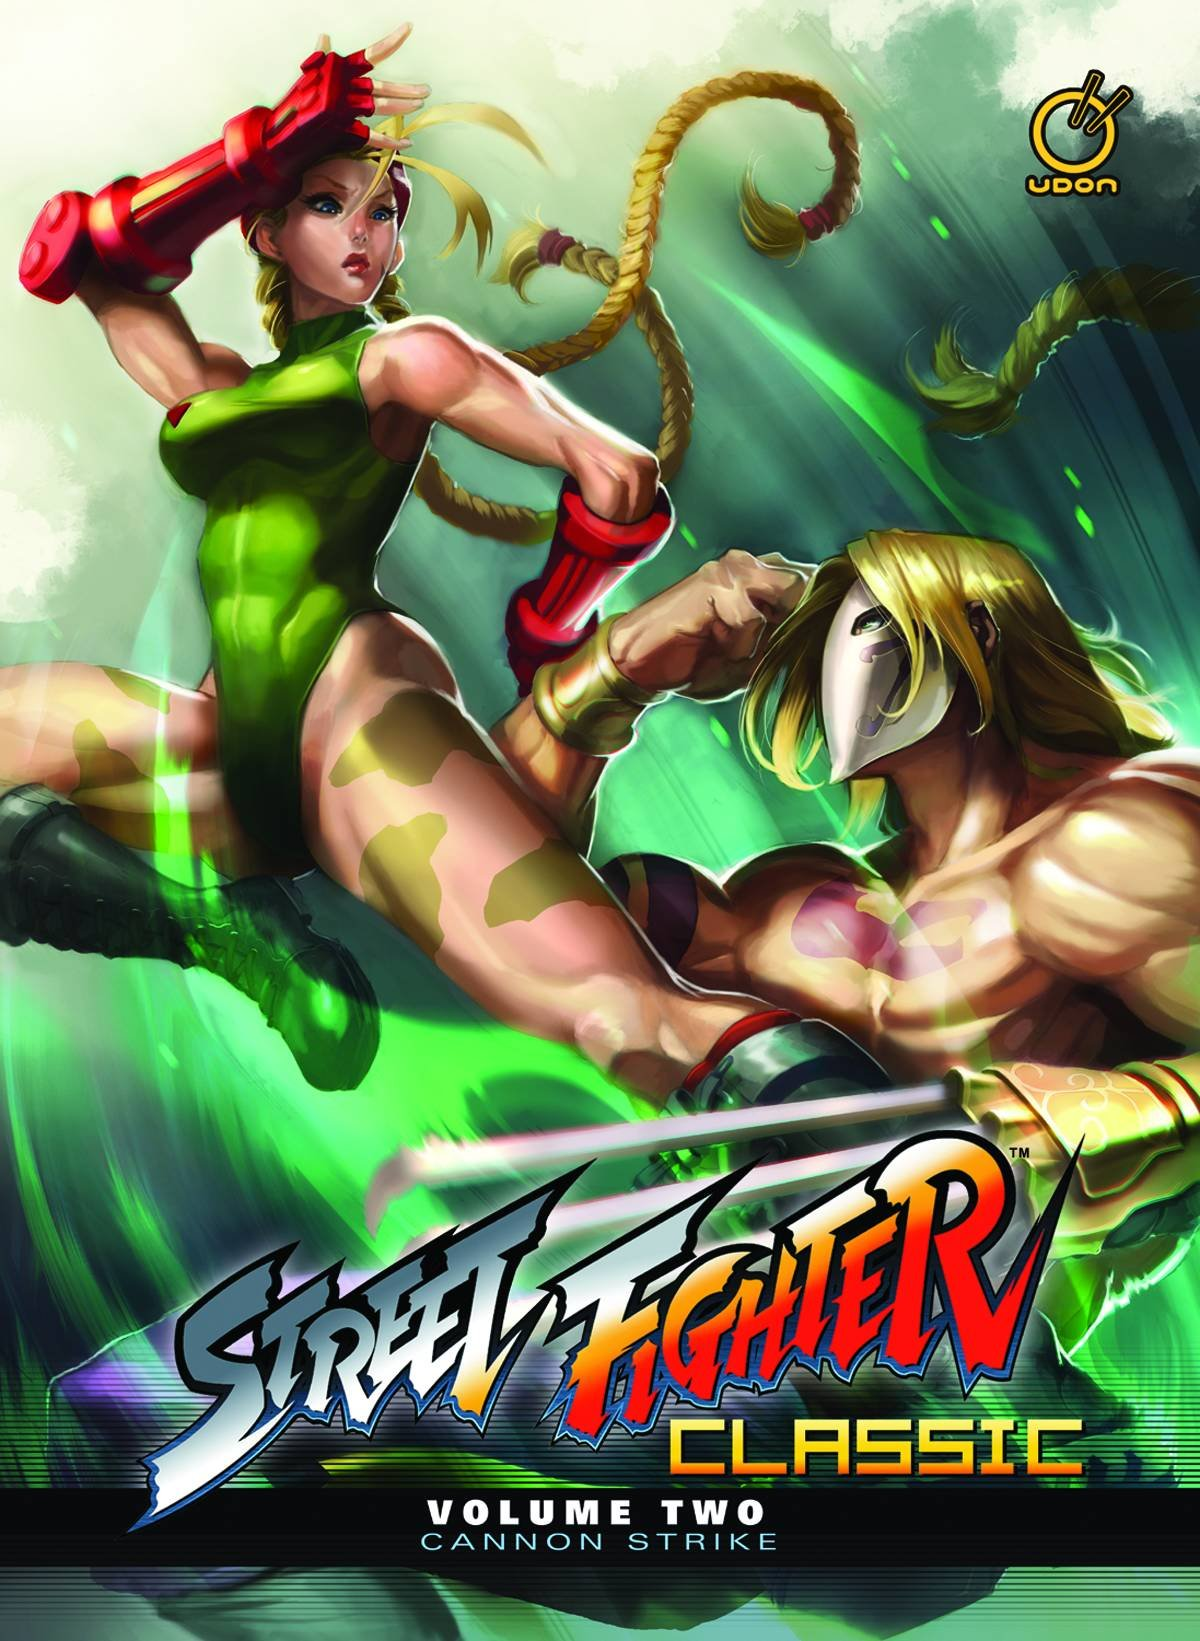 Street Fighter Classic Volume 2: Cannon Strike: Amazon.es: Siu-Chong, Ken, Lee, Alvin, Warren, Adam, Tsang, Arnold, Dogan, Omar, Young, Skottie: Libros en idiomas extranjeros